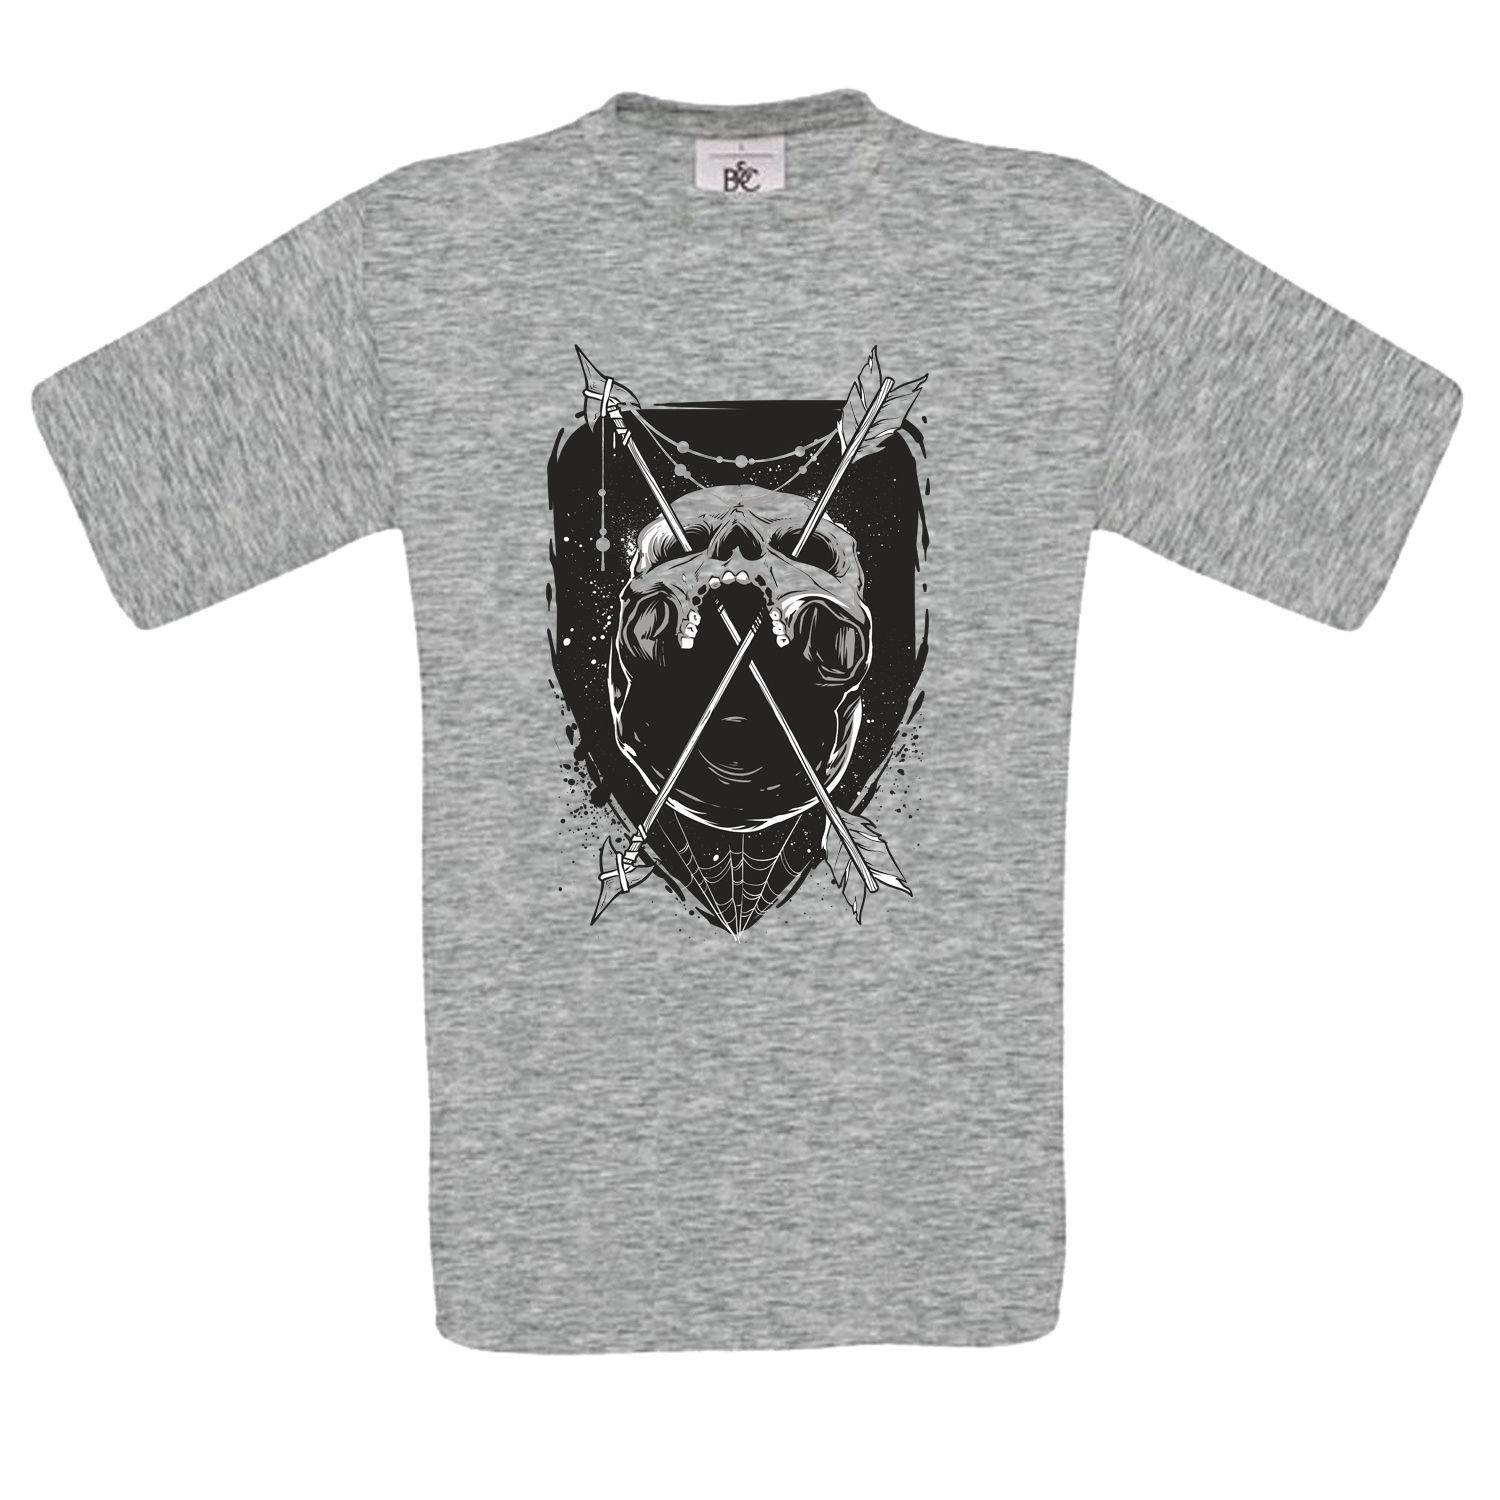 2f13b5822 NATIVE INDIAN SKULL ARROWS MENS Tshirt Tee Funny Unisex Casual Tshirt Top T  Shirts With Sayings Awesome T Shirt Designs From Thetoynation, $12.96   DHgate.